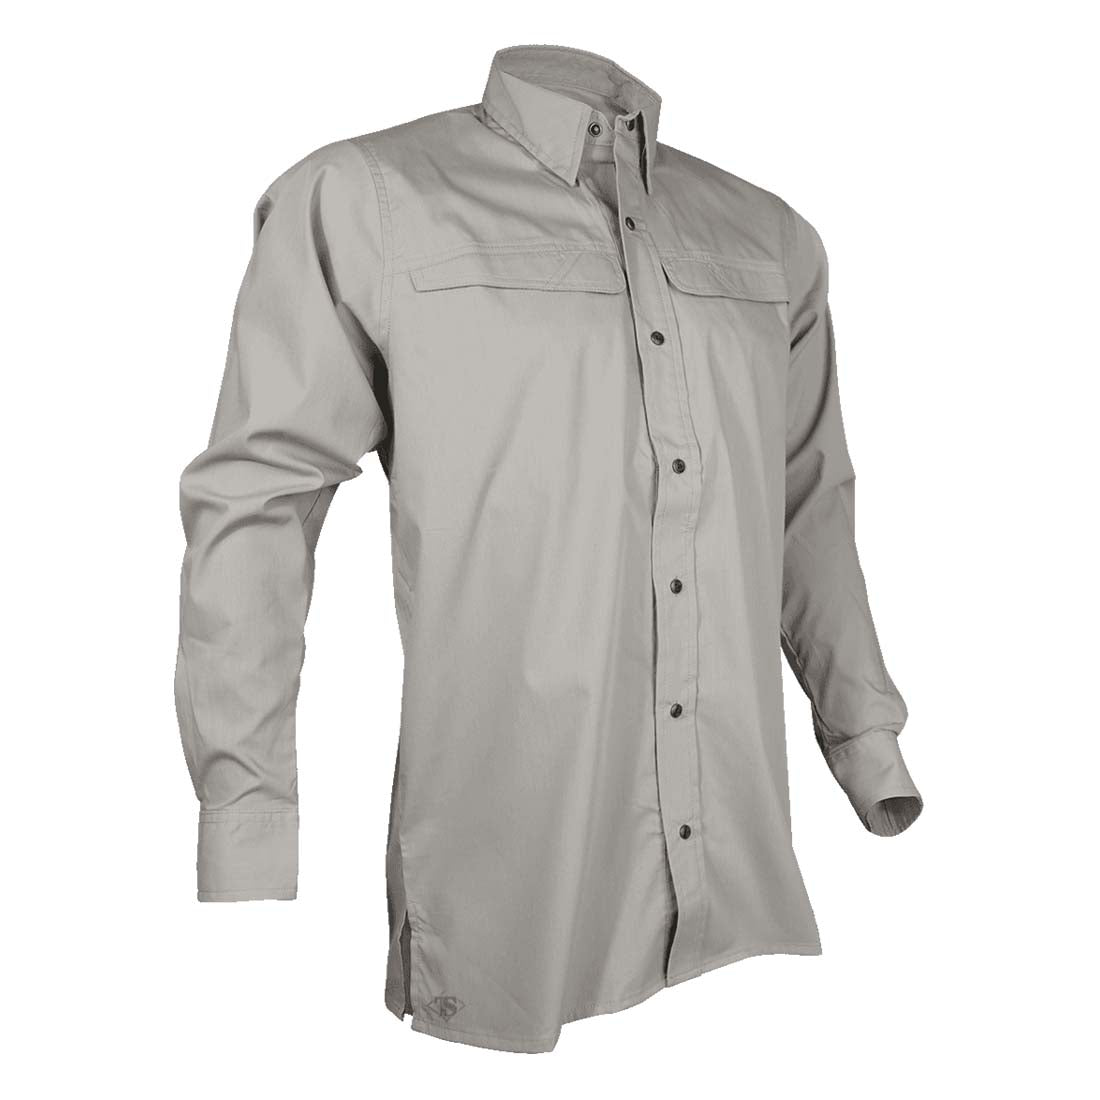 Tru-Spec 24/7 Series Men's Long Sleeve Pinnacle Shirt